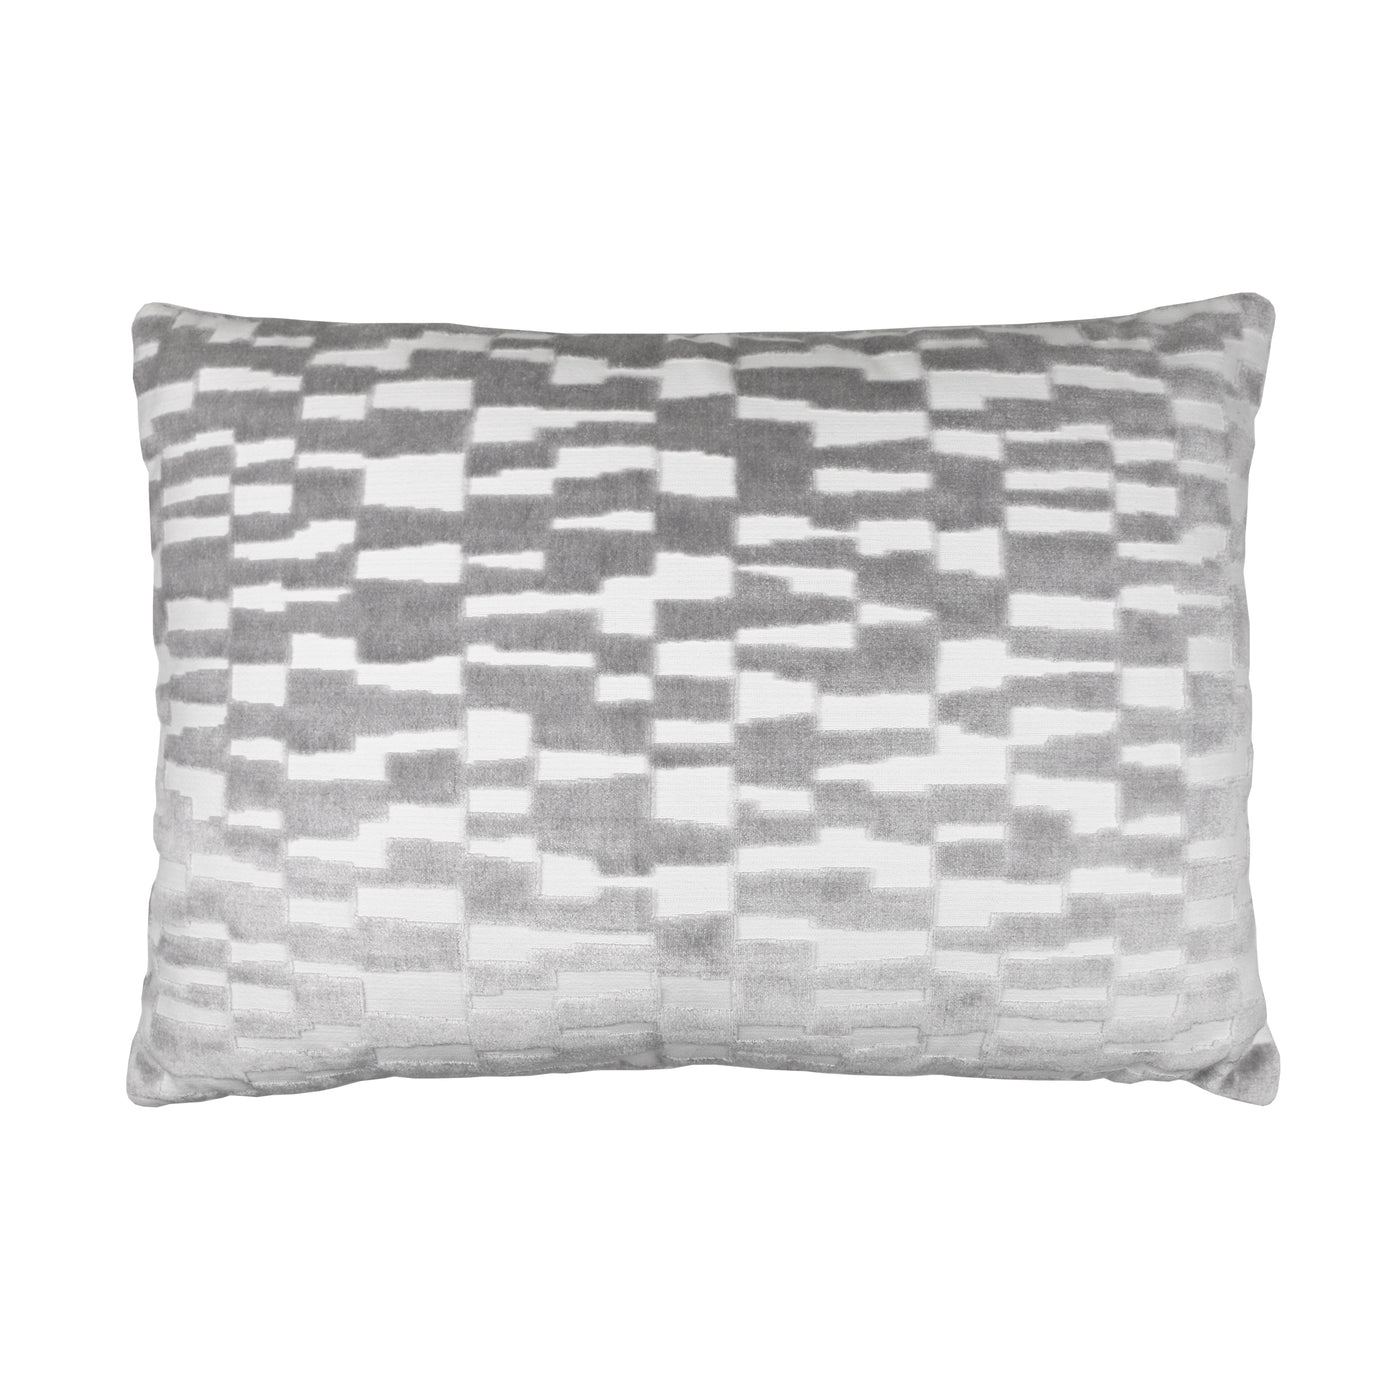 Tanner Pillow - Silver